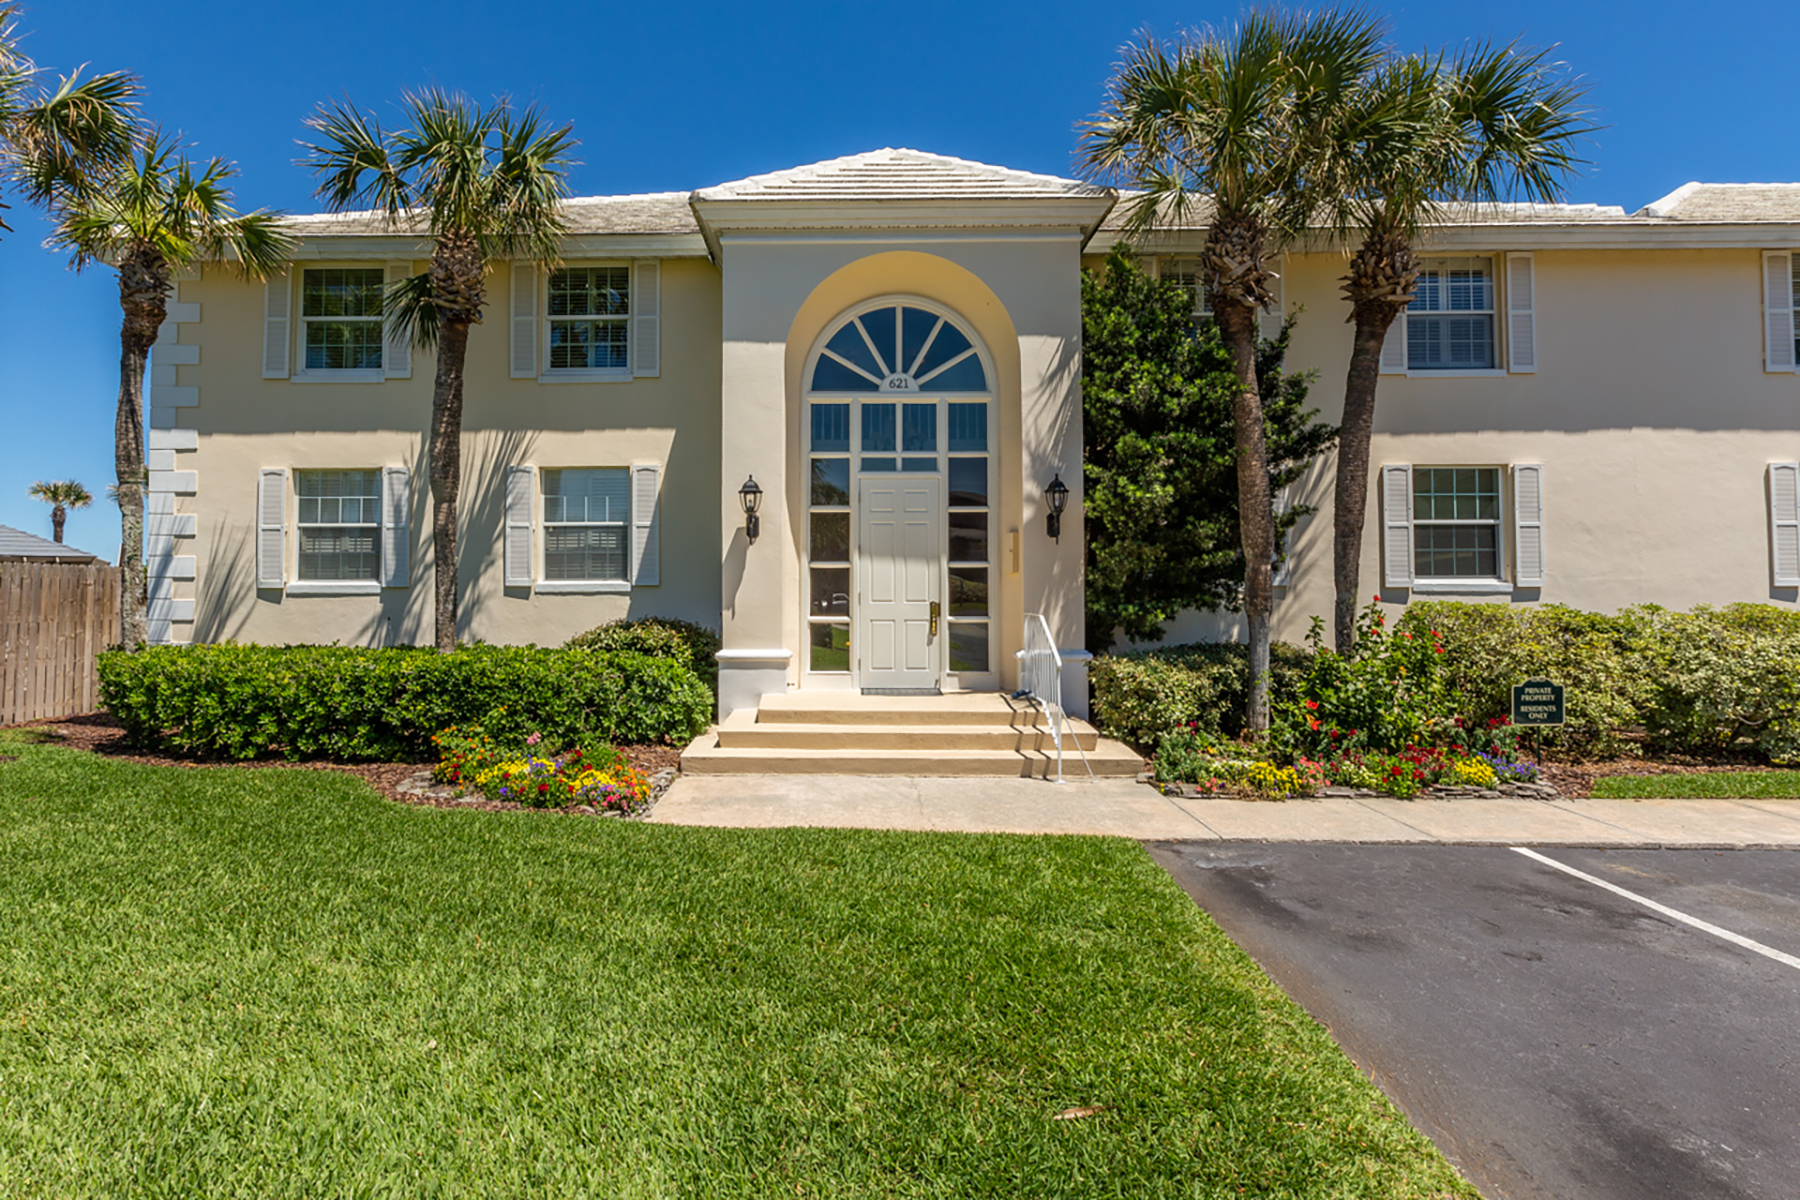 condominiums for Active at Ponte Vedra Beach 621 Ponte Vedra Blvd Unit 621C Ponte Vedra Beach, Florida 32082 United States